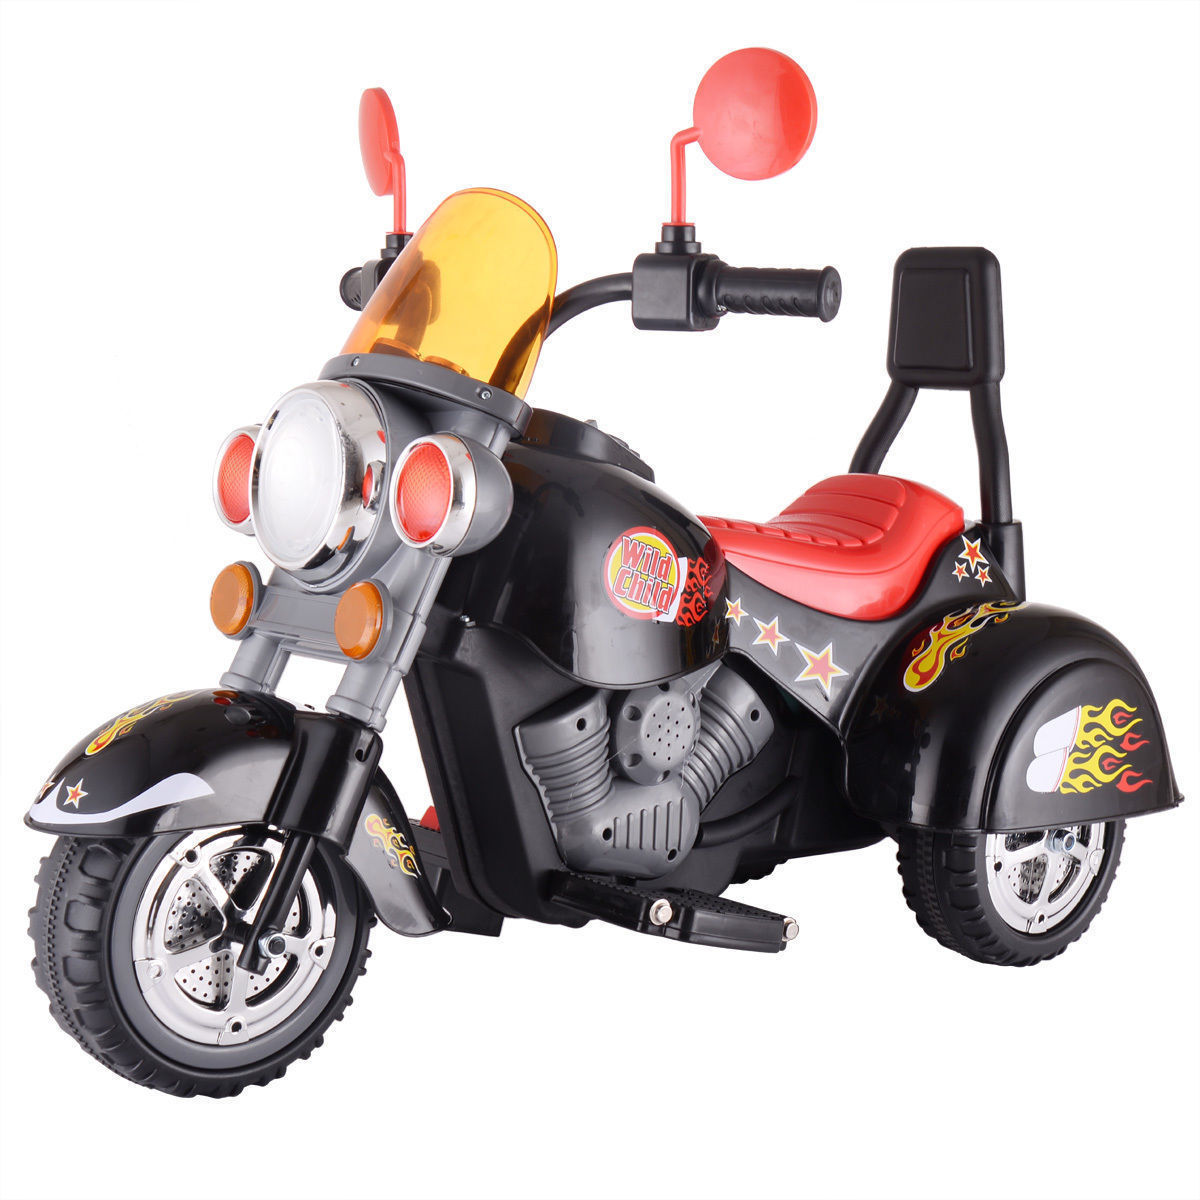 3 Wheel Harley Style Kids Ride On Motorcycle 6V Battery Powered Electric Toy by